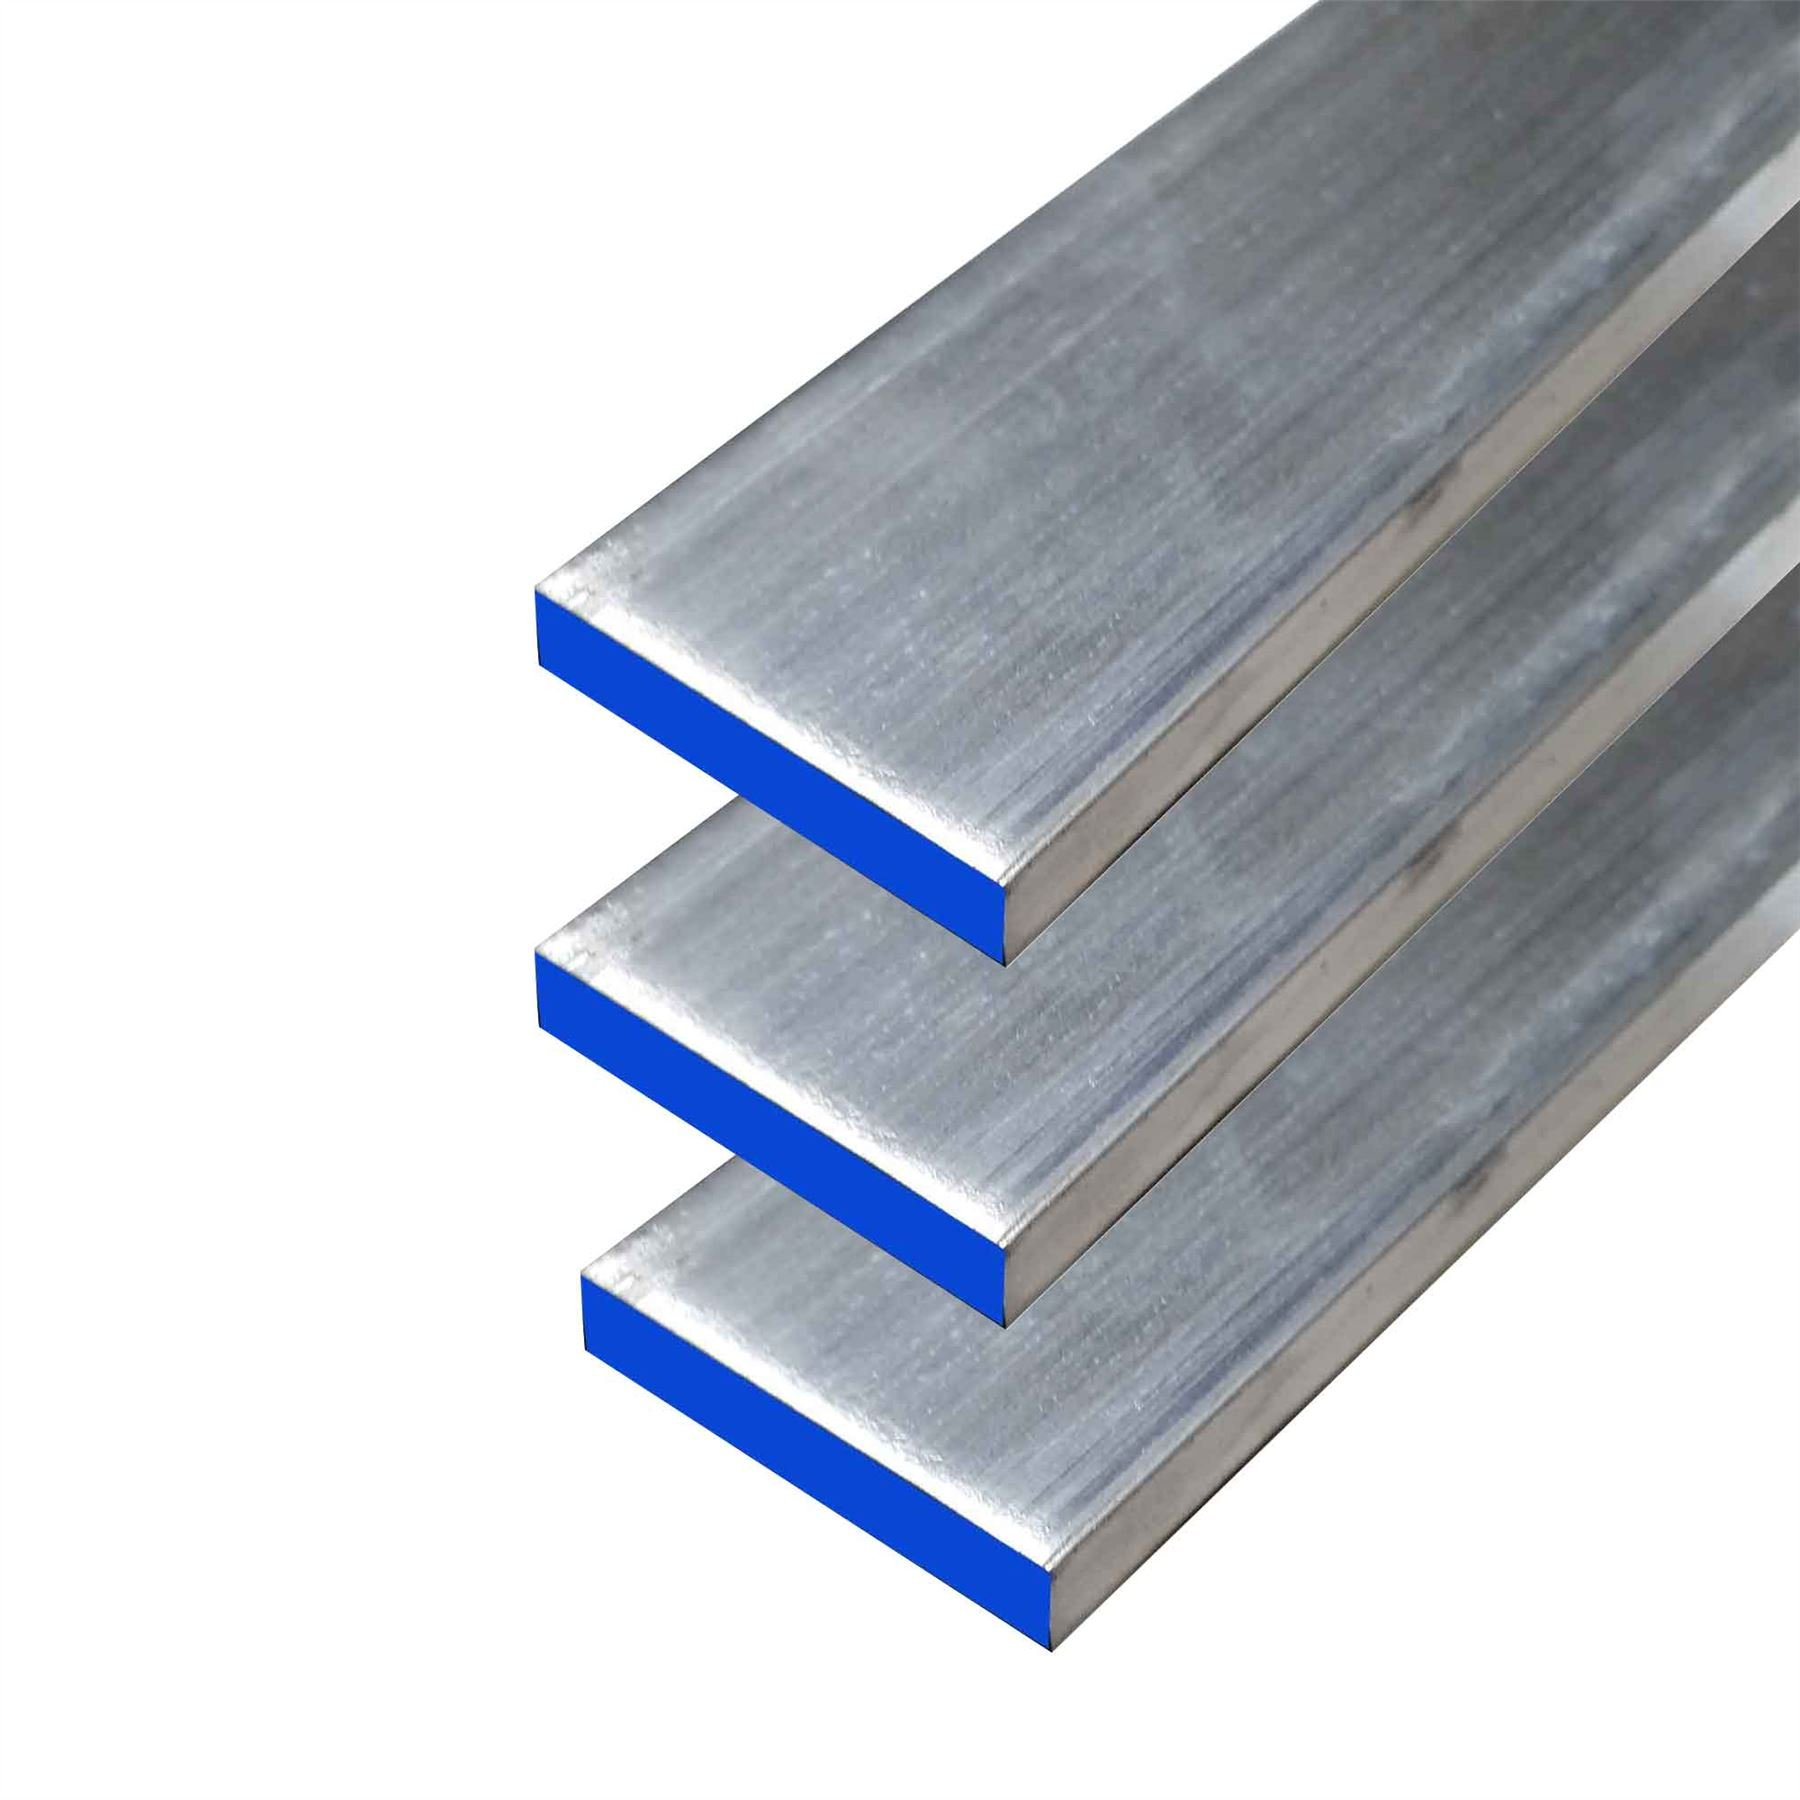 Online Metal Supply 6061 Aluminum Rectangle Bar, 1/4'' x 1-1/4'' x 48'' (3 Pack) by Online Metal Supply